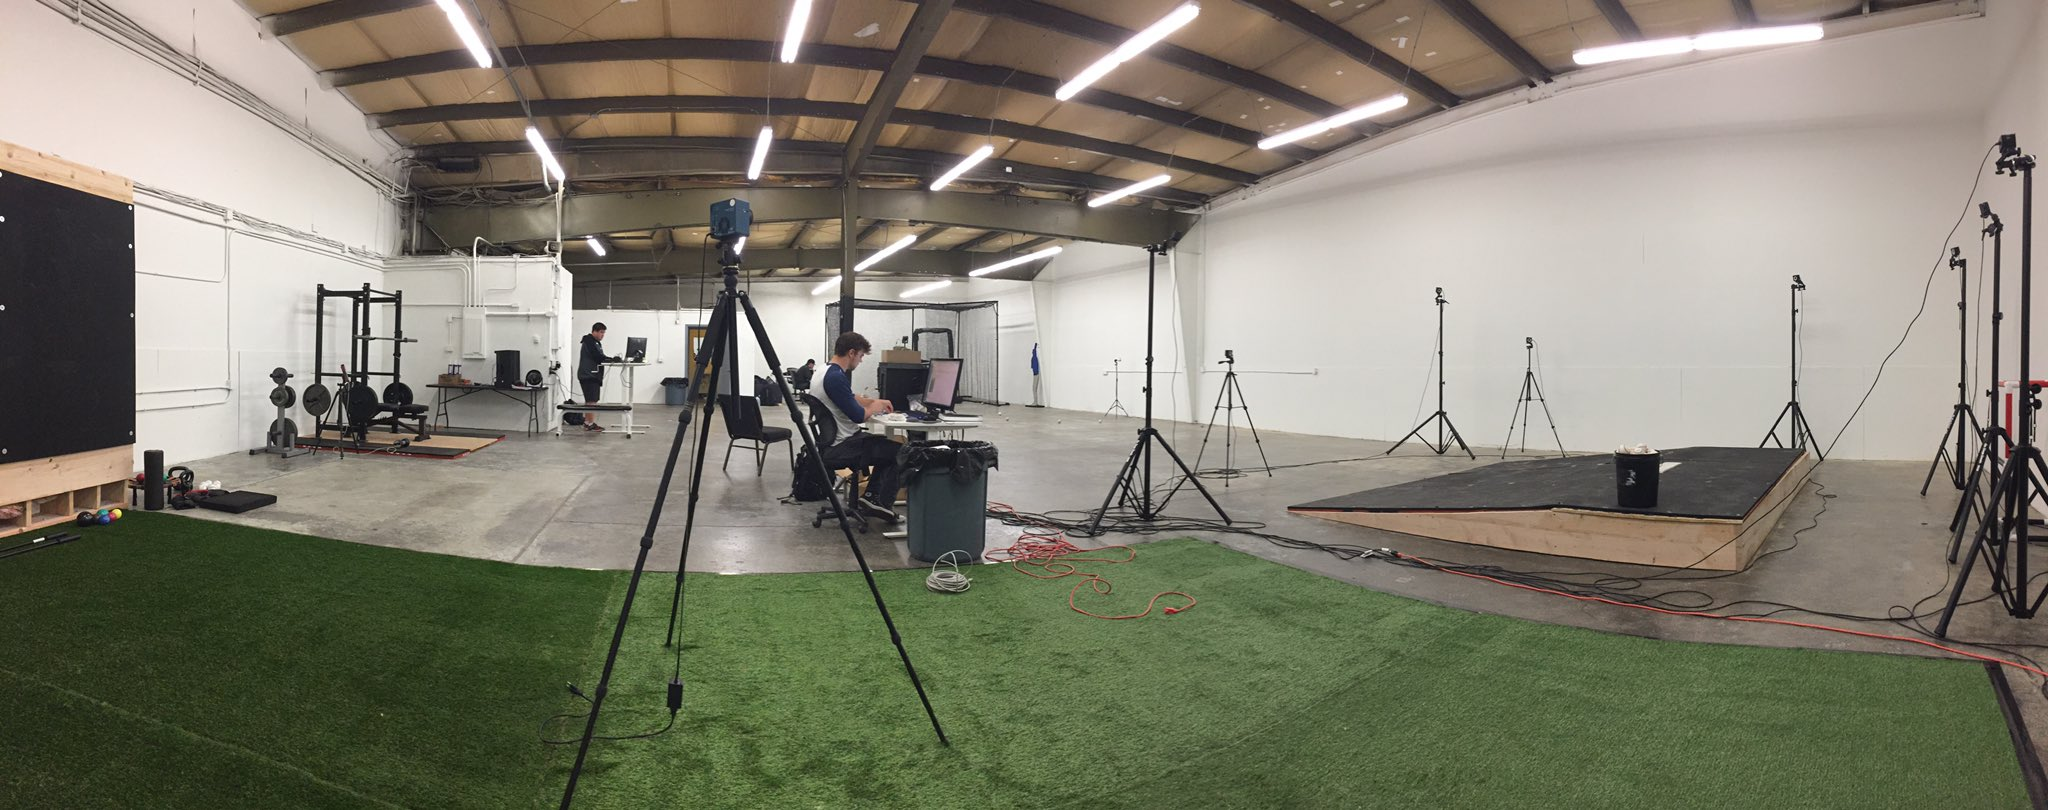 Driveline Research Lab